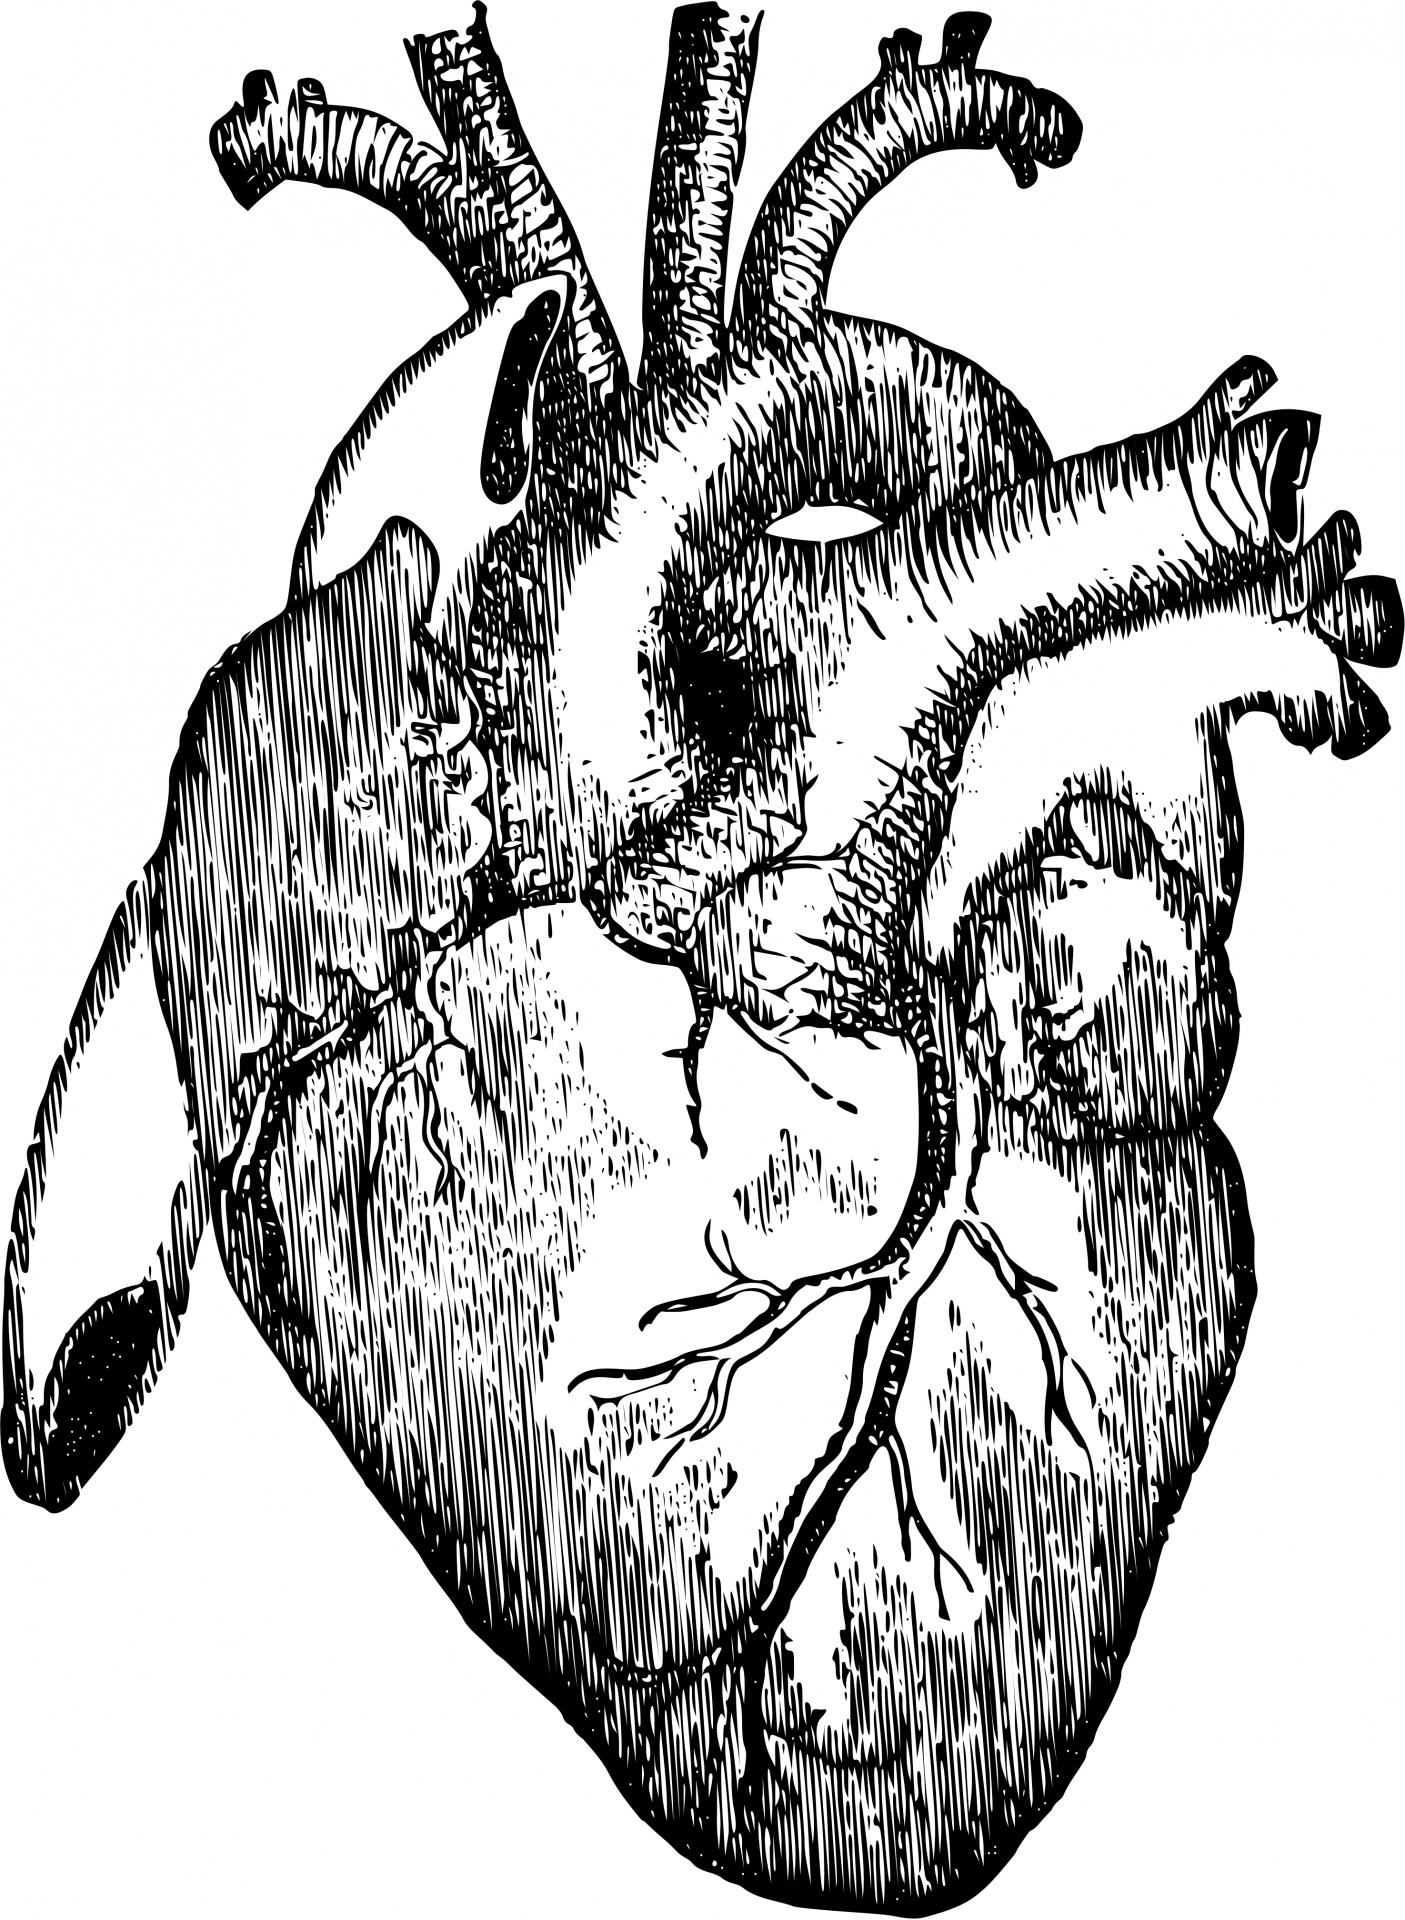 Vintage Heart Drawing At Getdrawings Free For Personal Use